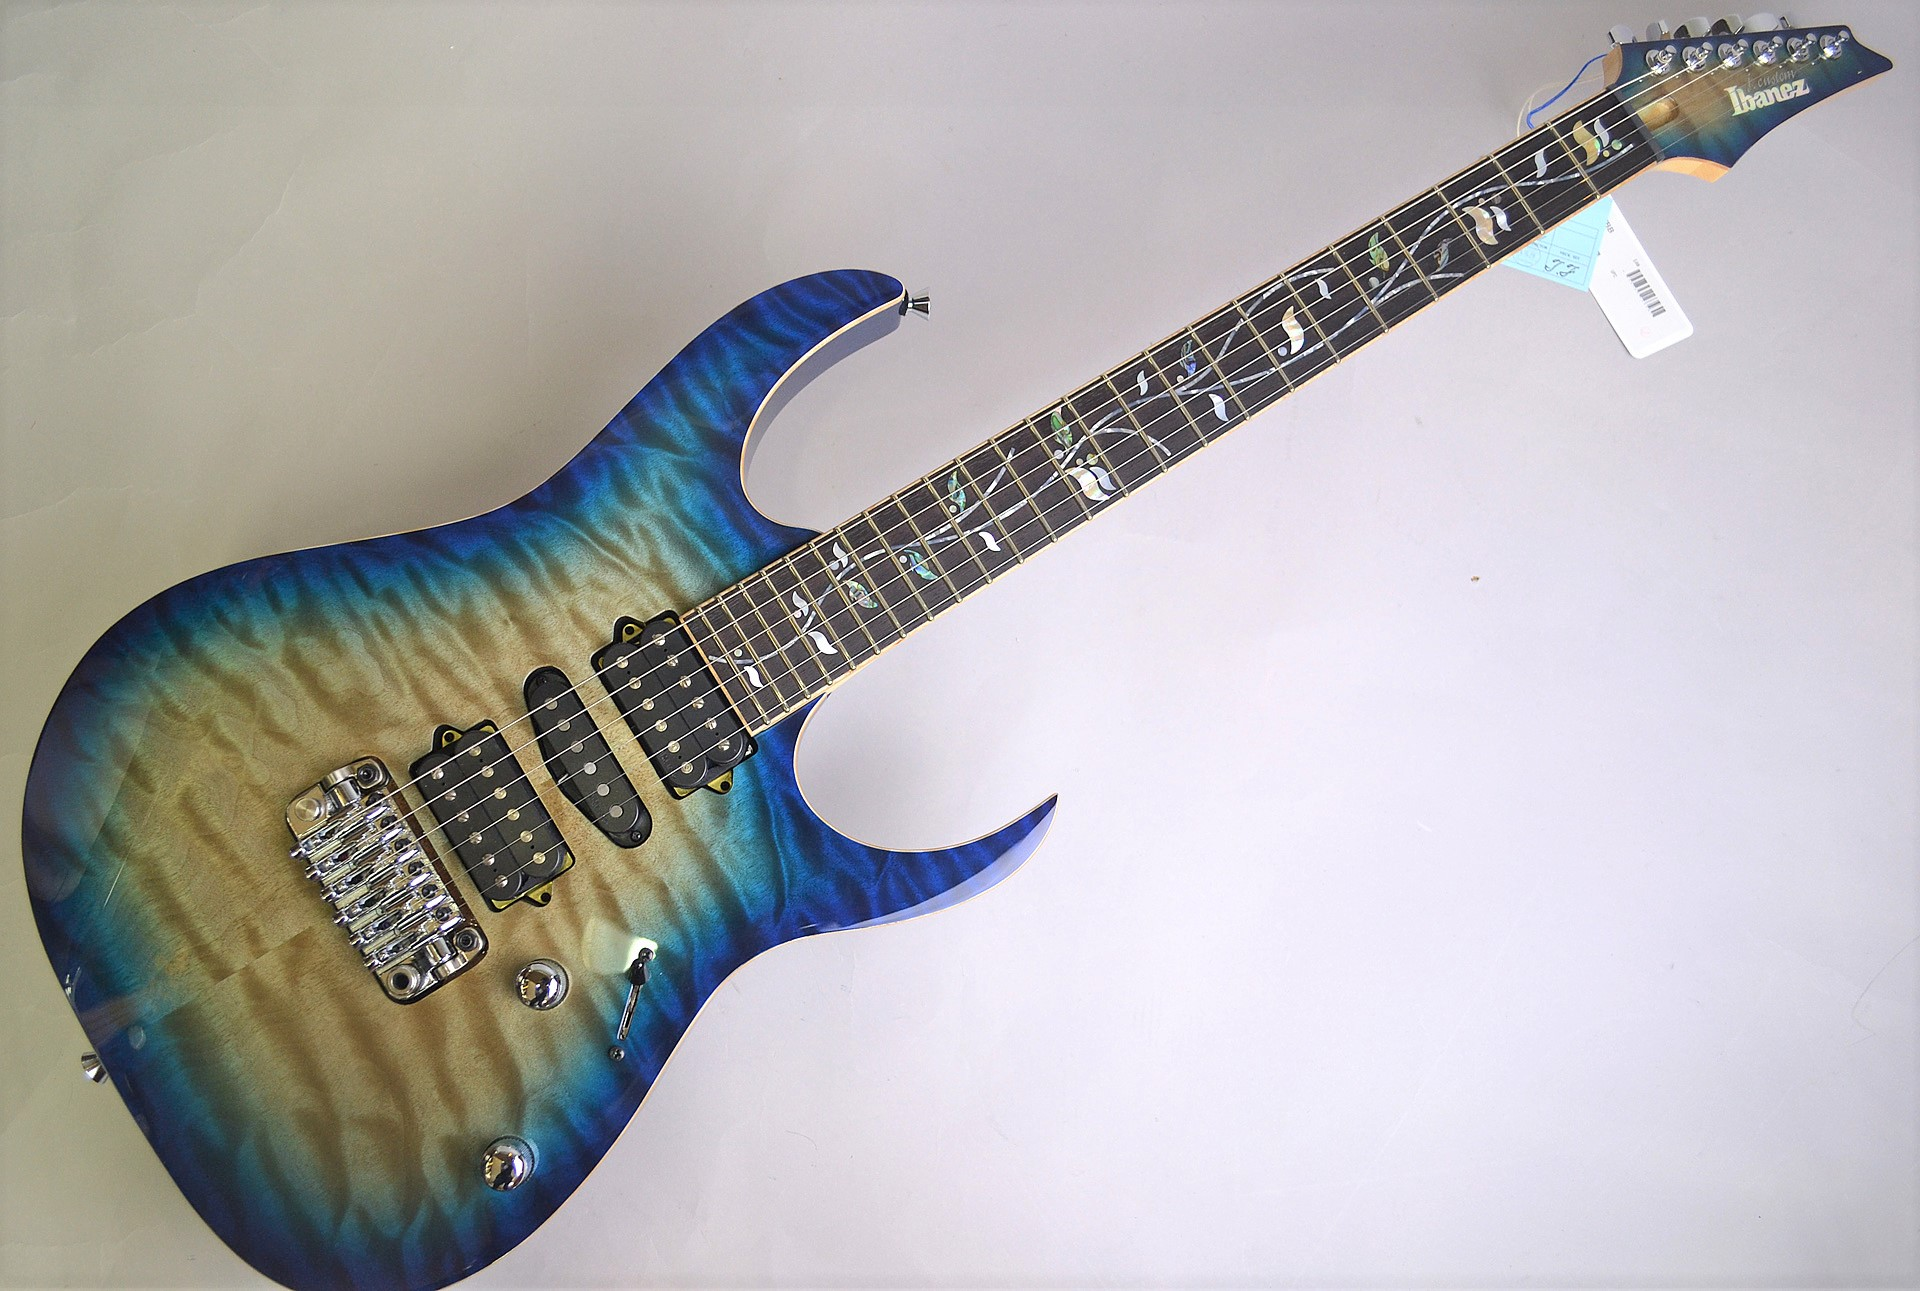 Ibanez RGV8570-CBB Cerulean Blue Burst 特注J-Custom Cerulean Blue Burst